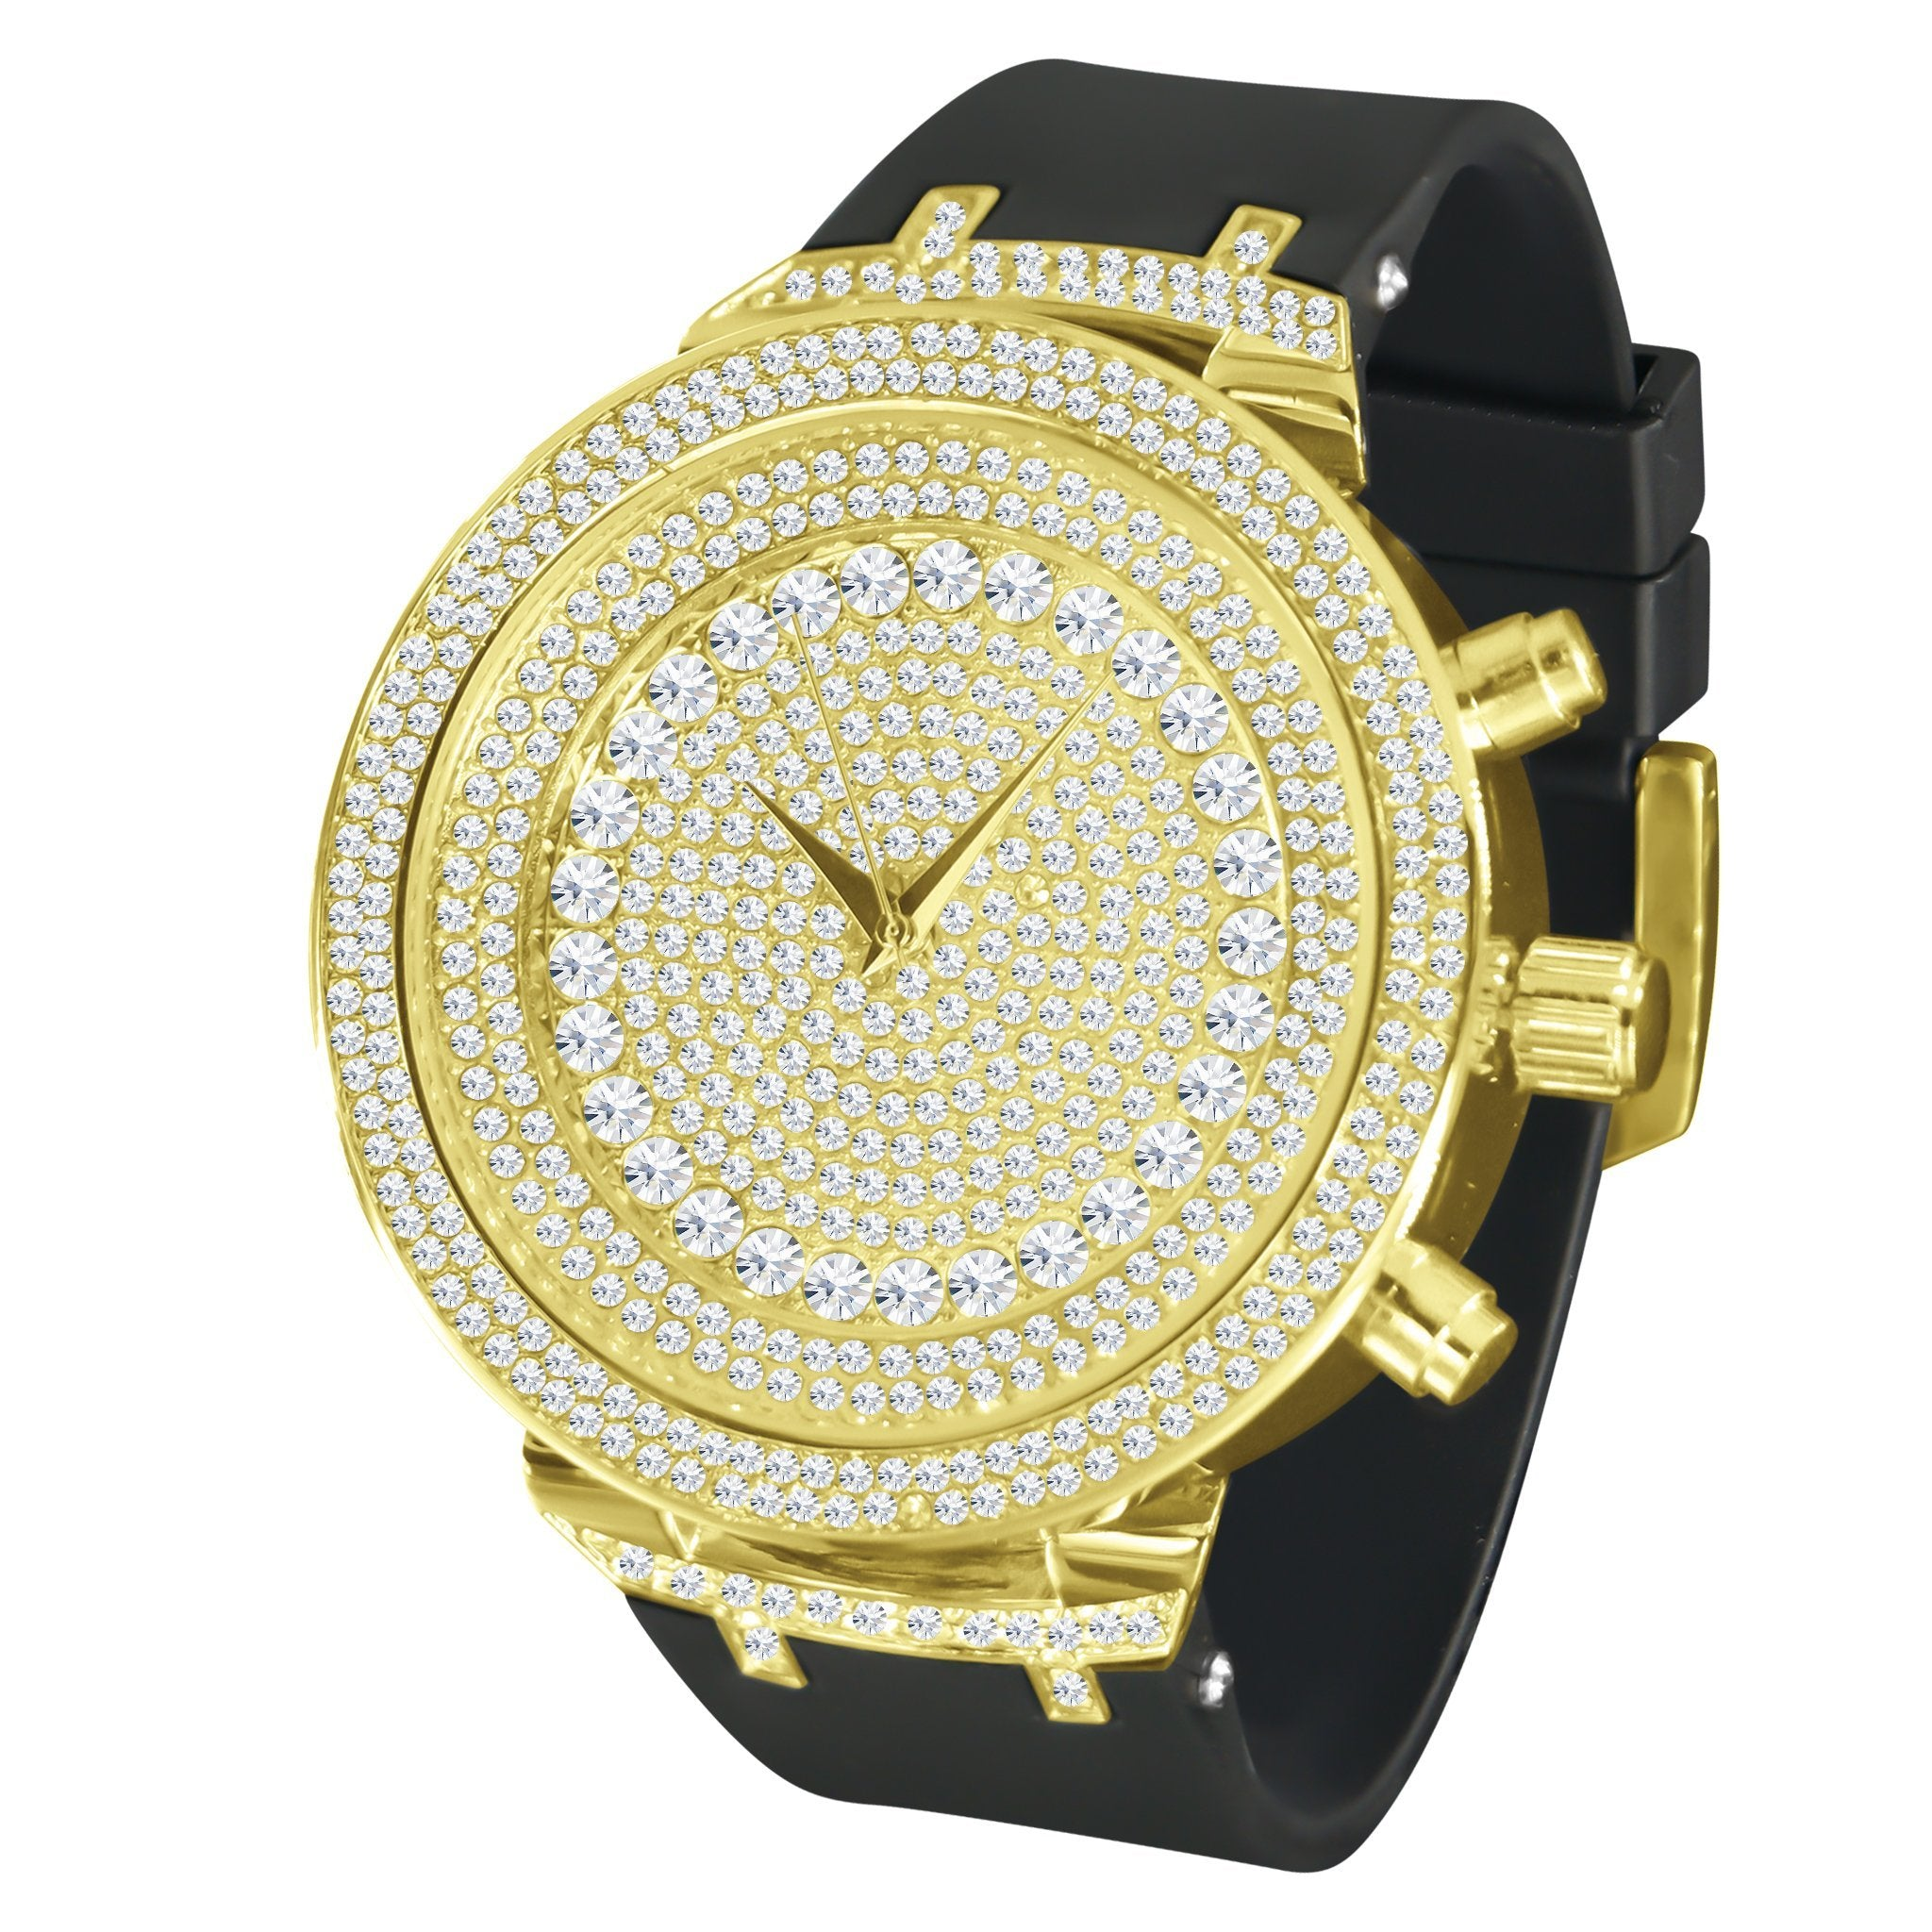 Bling Watch » 561032